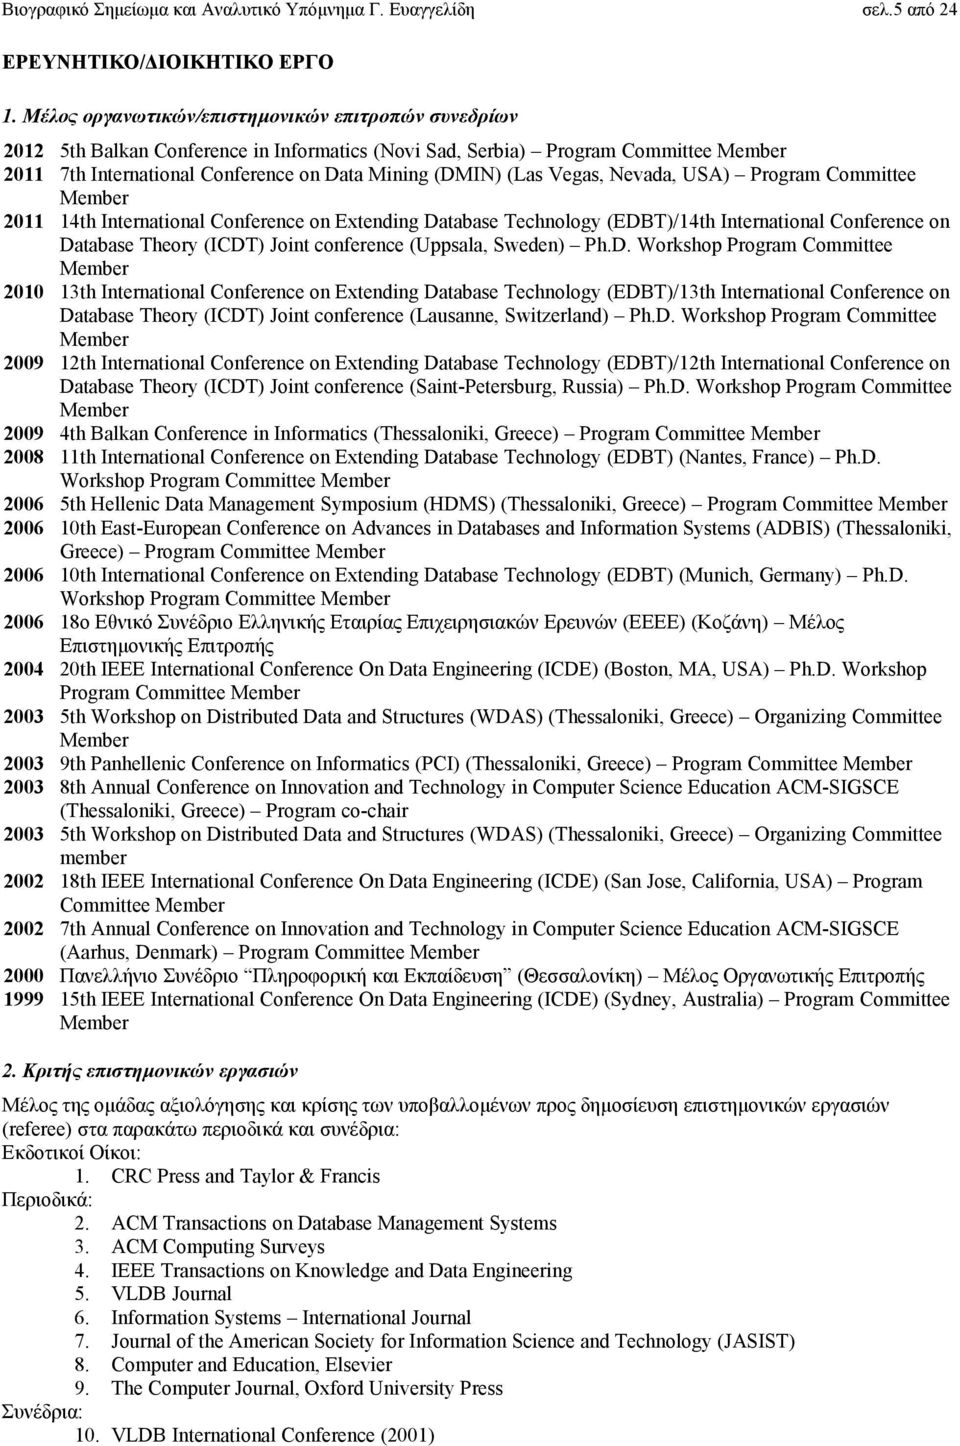 Vegas, Nevada, USA) Program Committee Member 2011 14th International Conference on Extending Database Technology (EDBT)/14th International Conference on Database Theory (ICDT) Joint conference